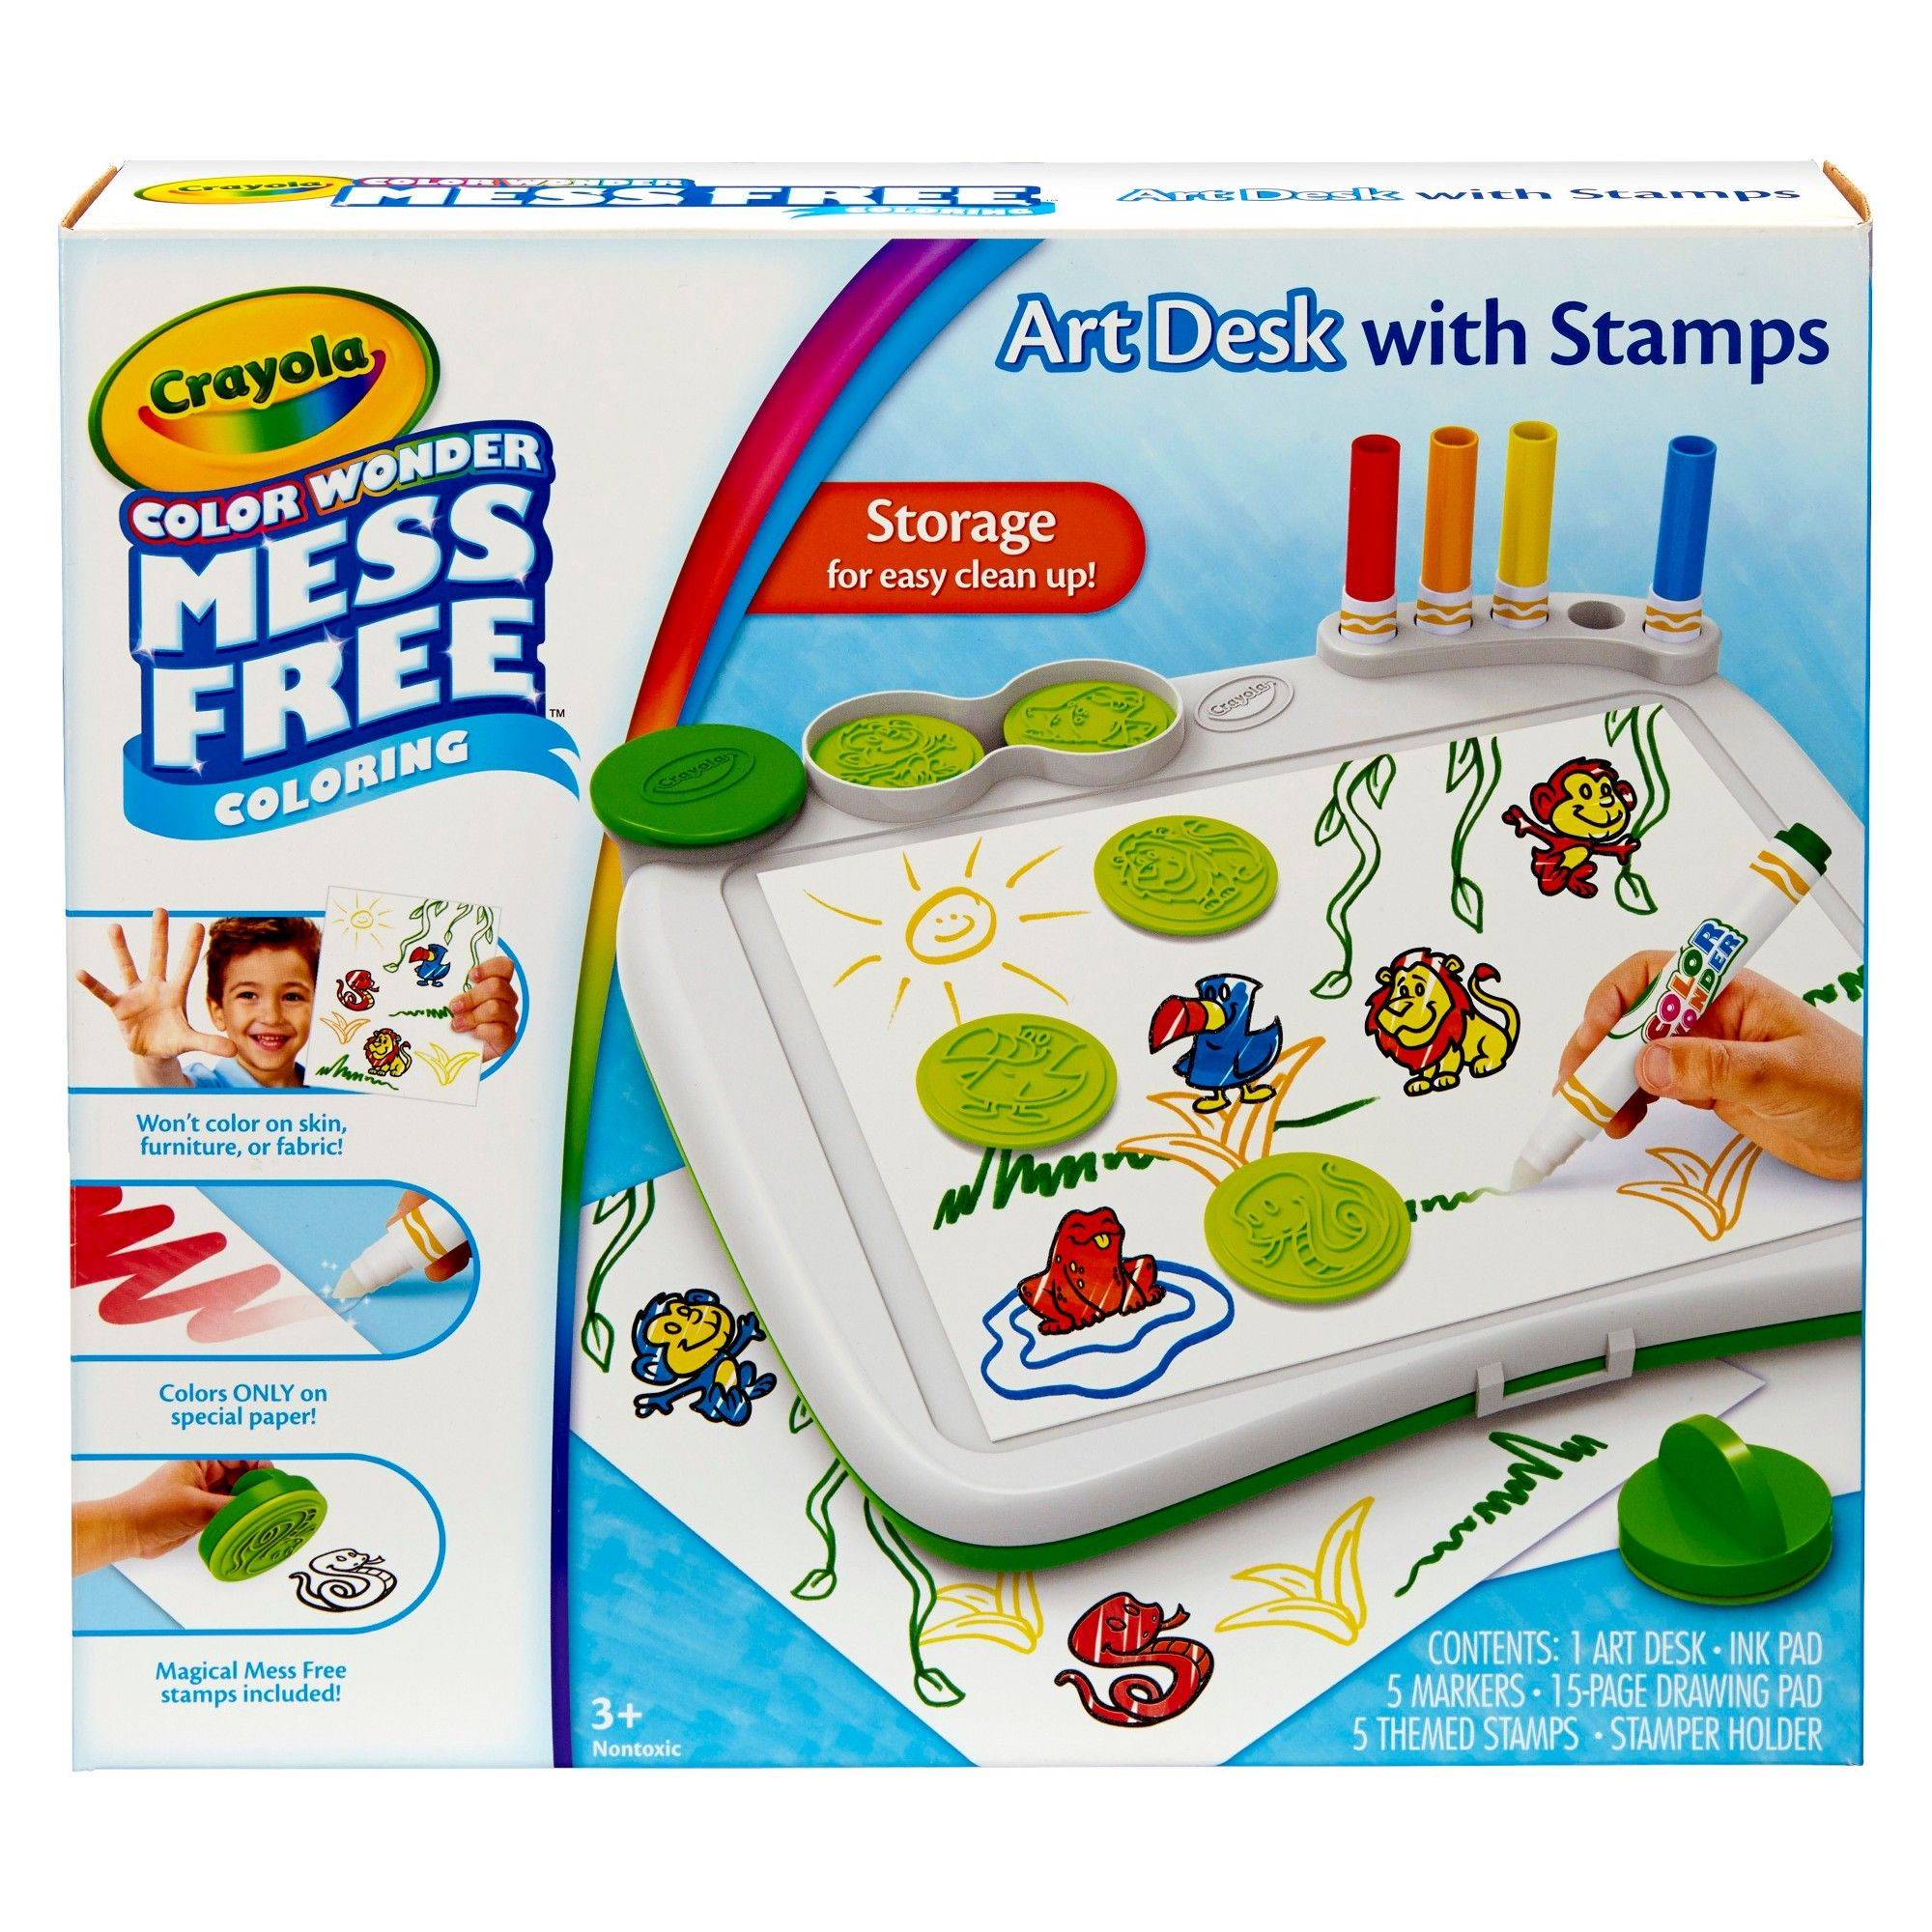 Crayola Color Wonder Mess-Free Stamping Desk, | Products ...